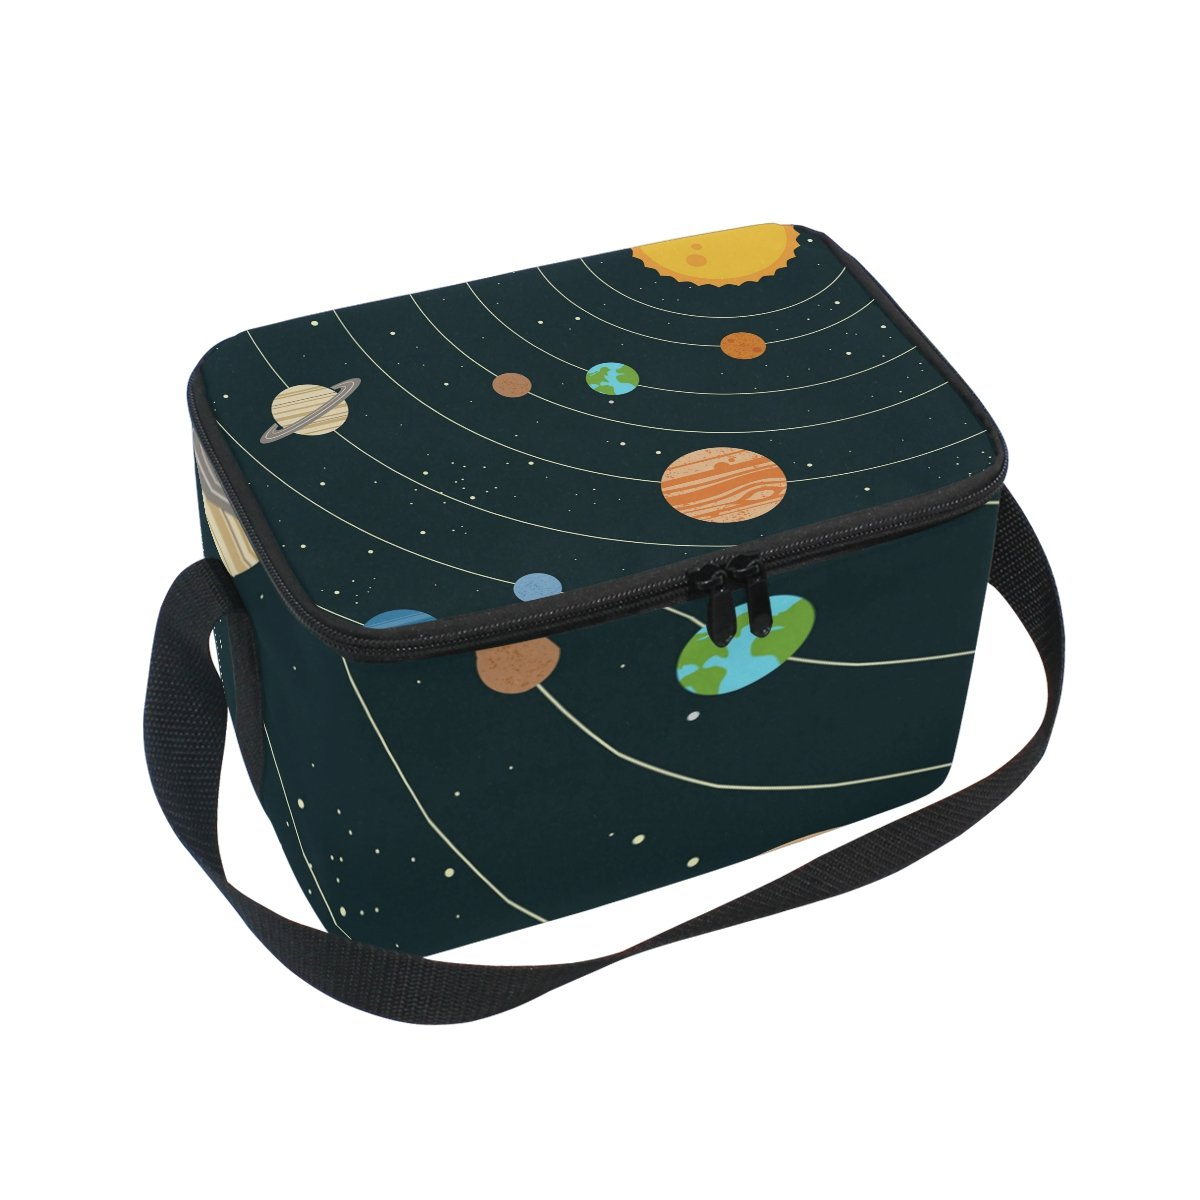 LORVIES Solar System Universe Insulated Lunch Box Bag Cooler Reusable Tote Bag with Adjustable Shoulder Strap for Women Men